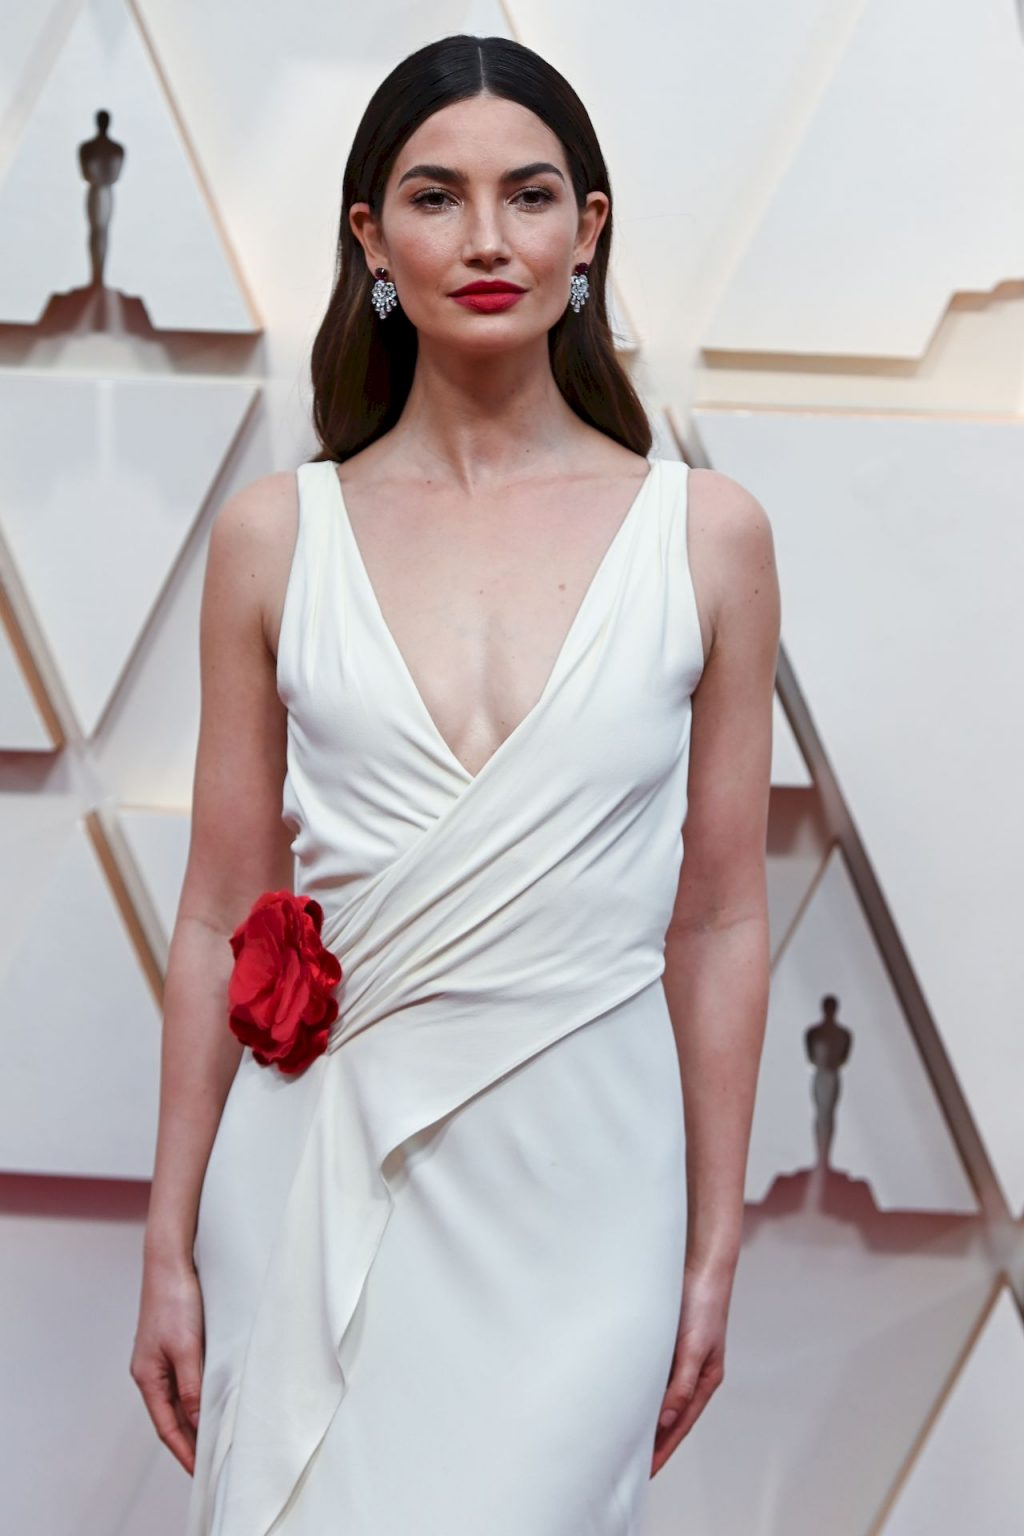 Lily Aldridge Arrives to the 92nd Academy Awards (26 Photos)